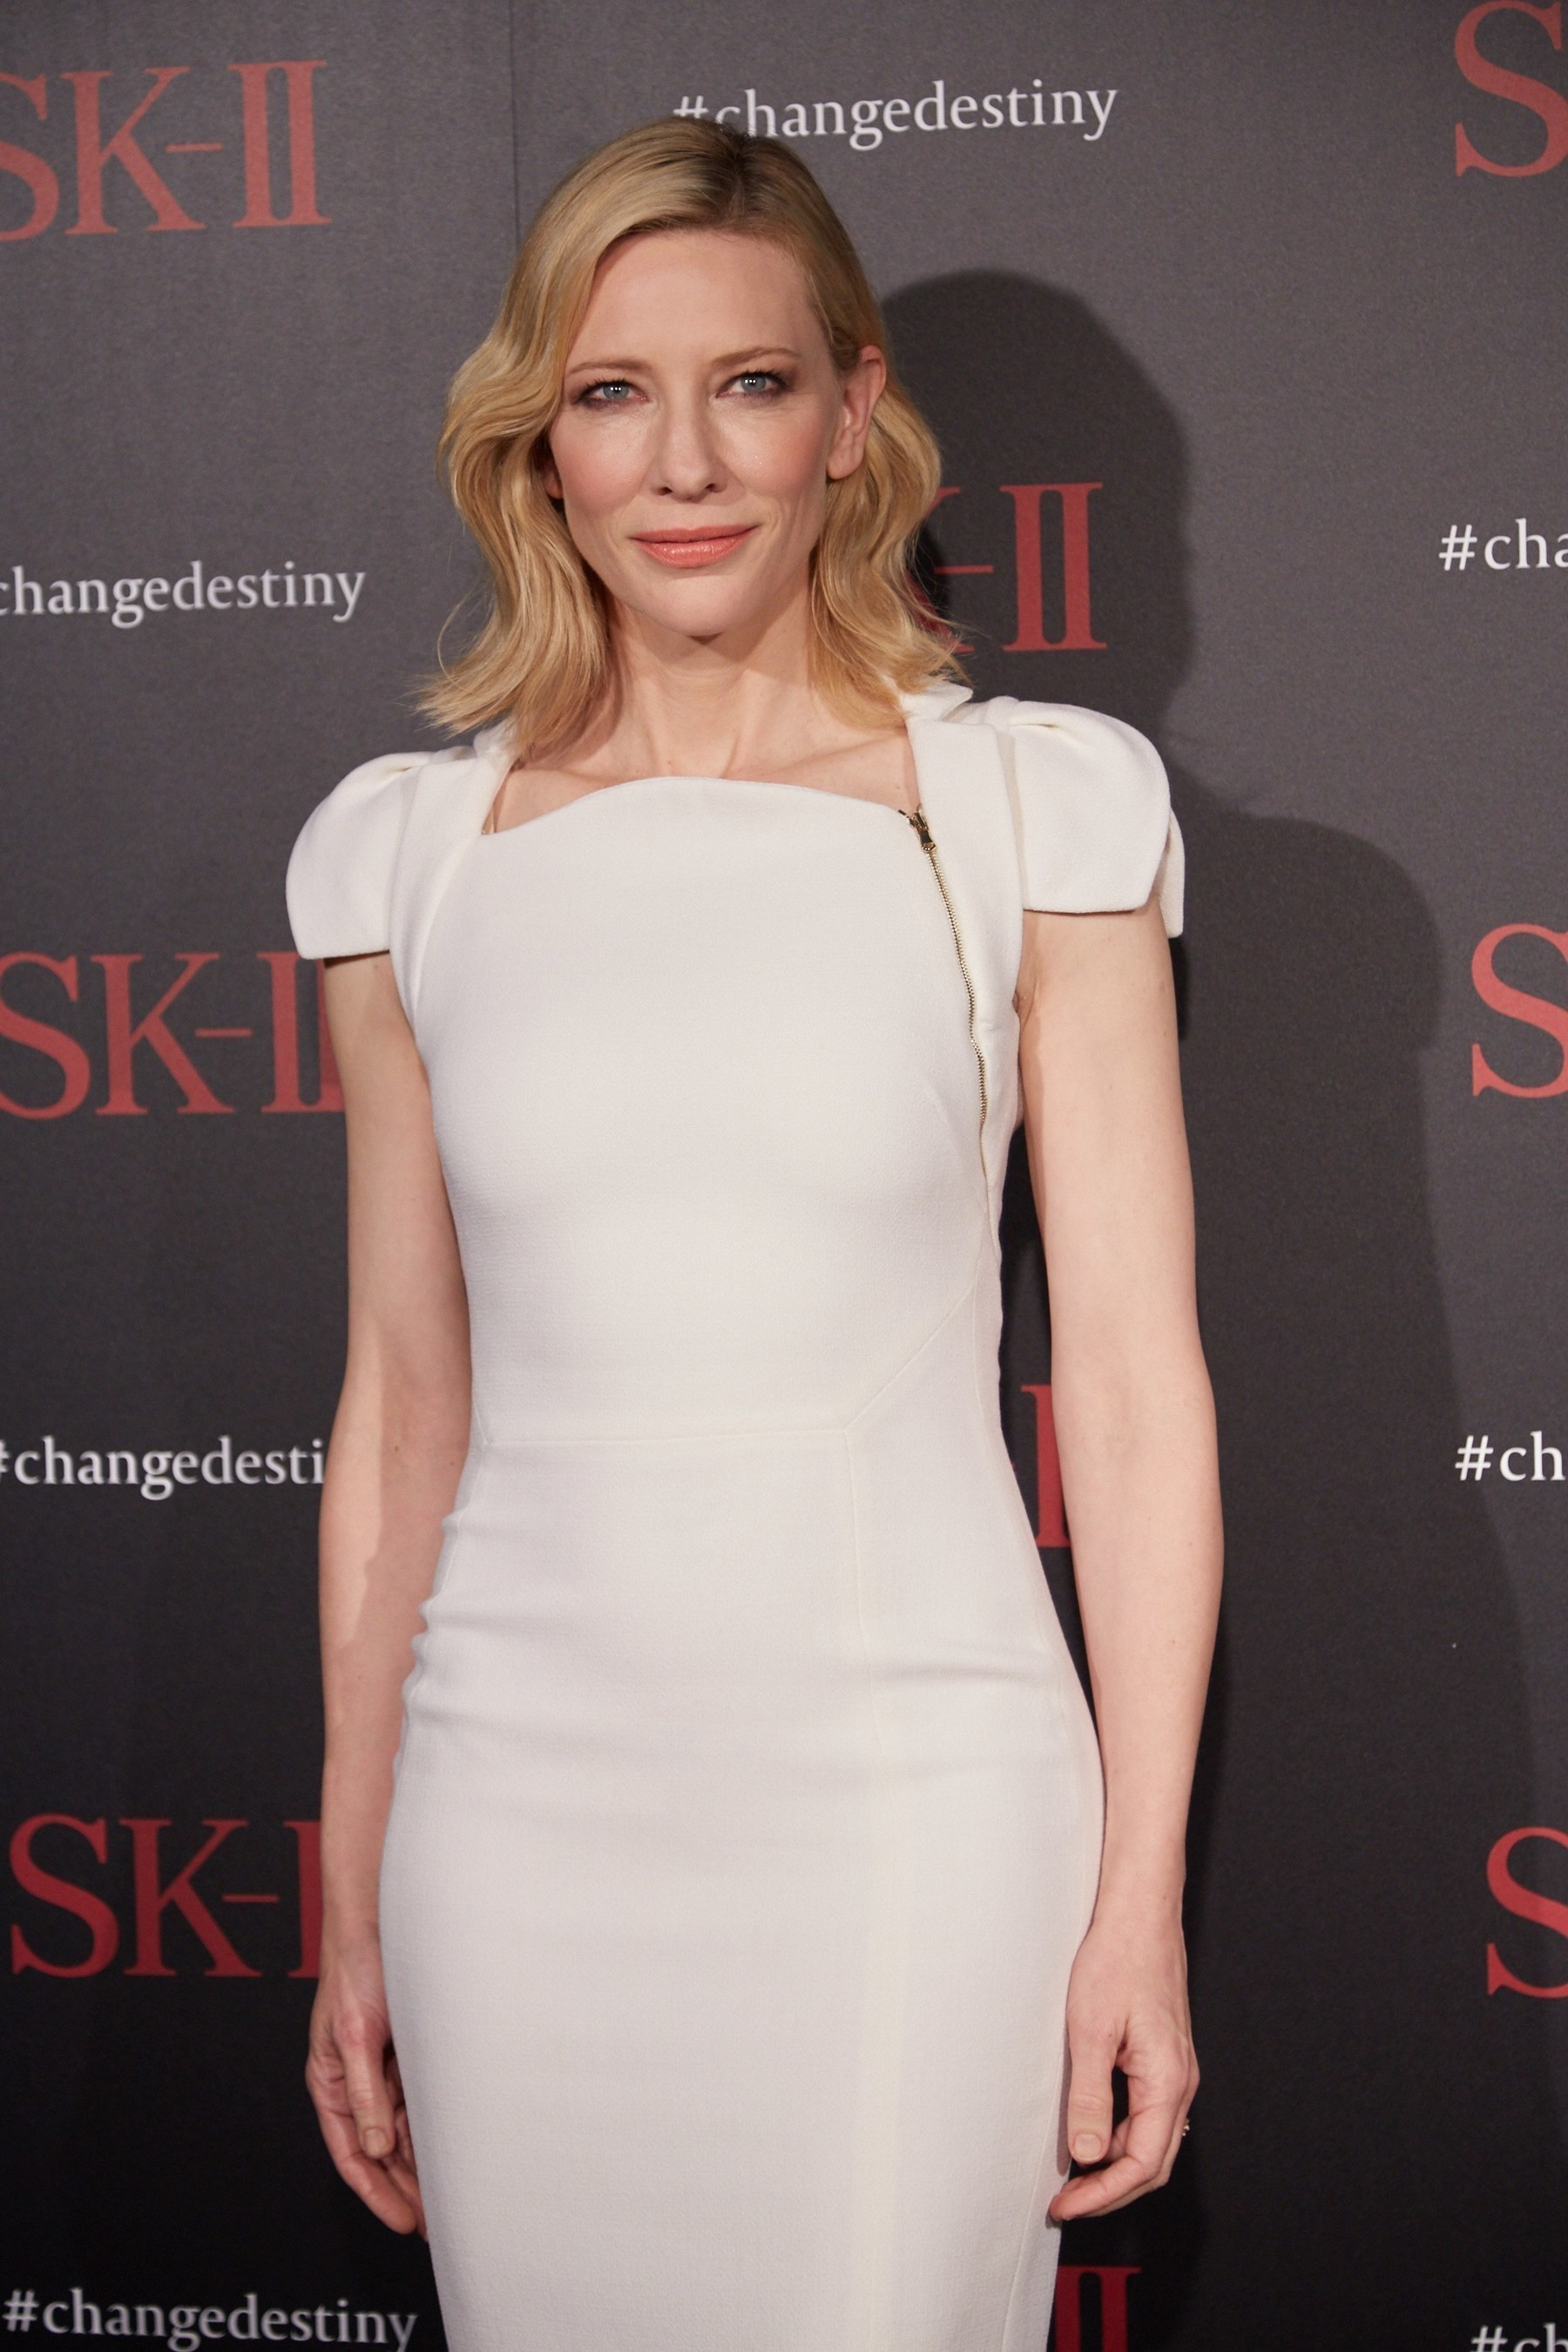 88th Academy Award Nominee Cate Blanchett Hosts SK-II #ChangeDestiny Forum In Los Angeles